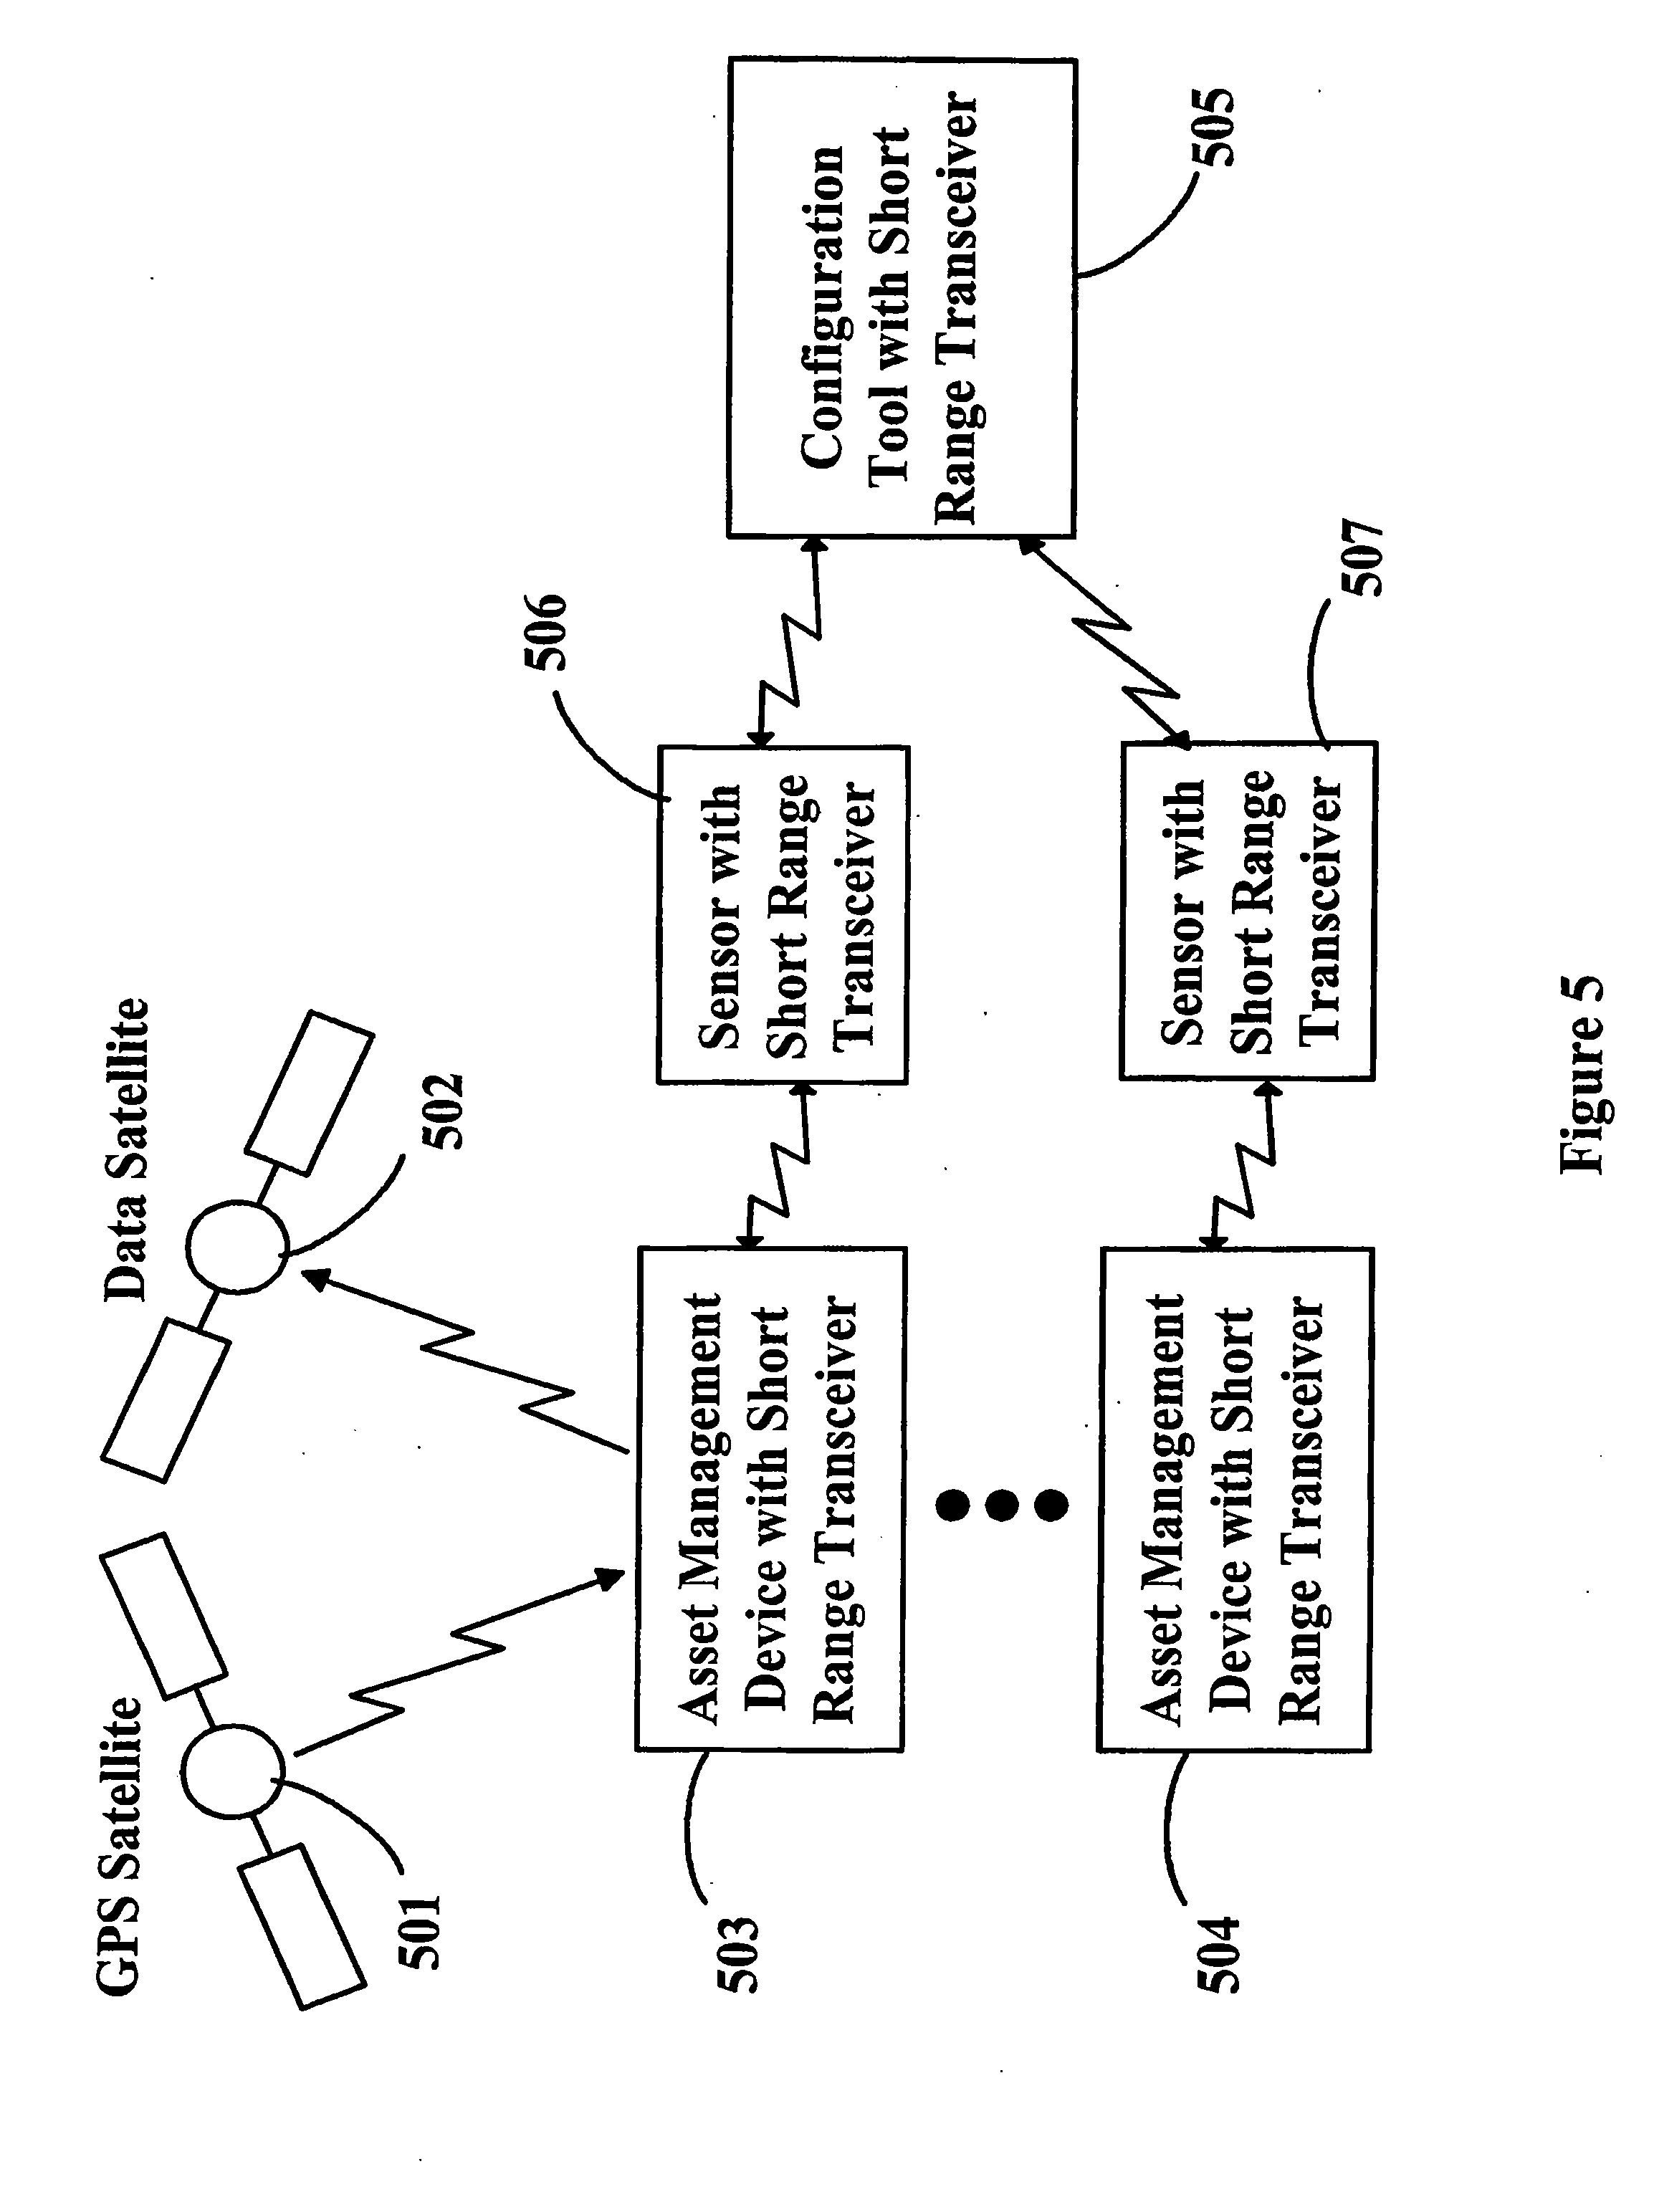 power management unit and controller